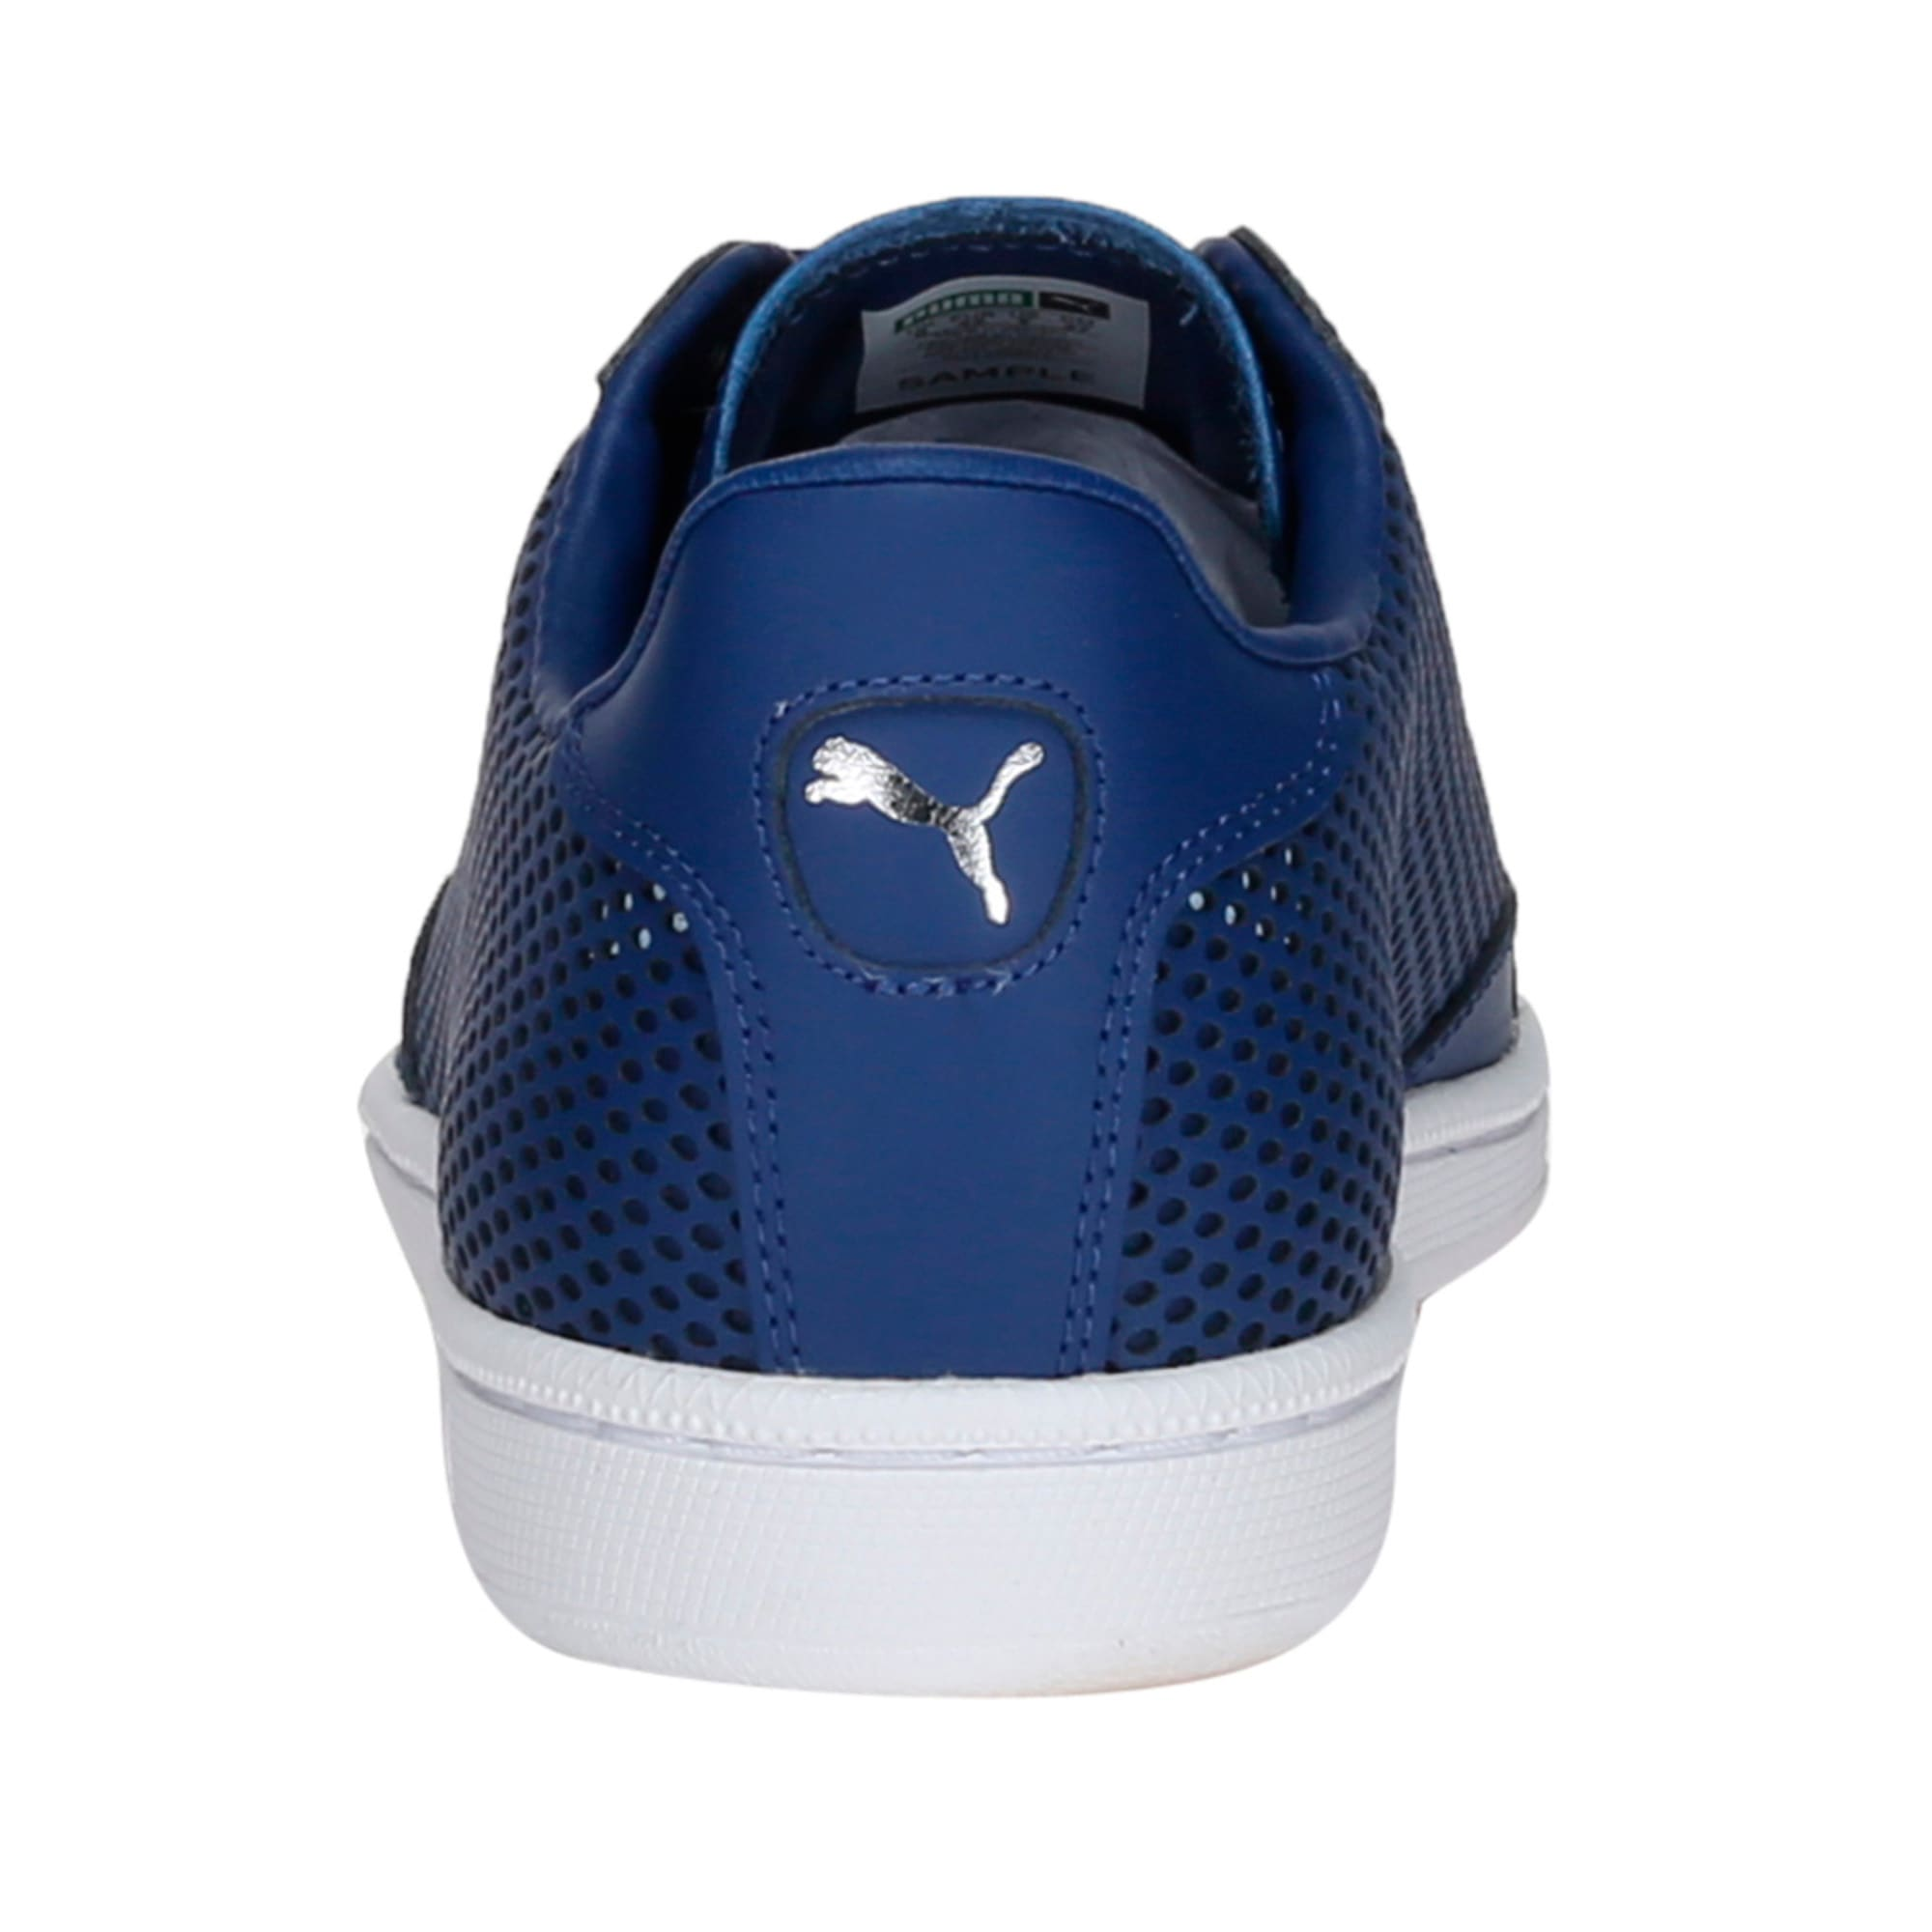 Thumbnail 3 of Match 74 Summer Shade Trainers, TWILIGHT BLUE, medium-IND